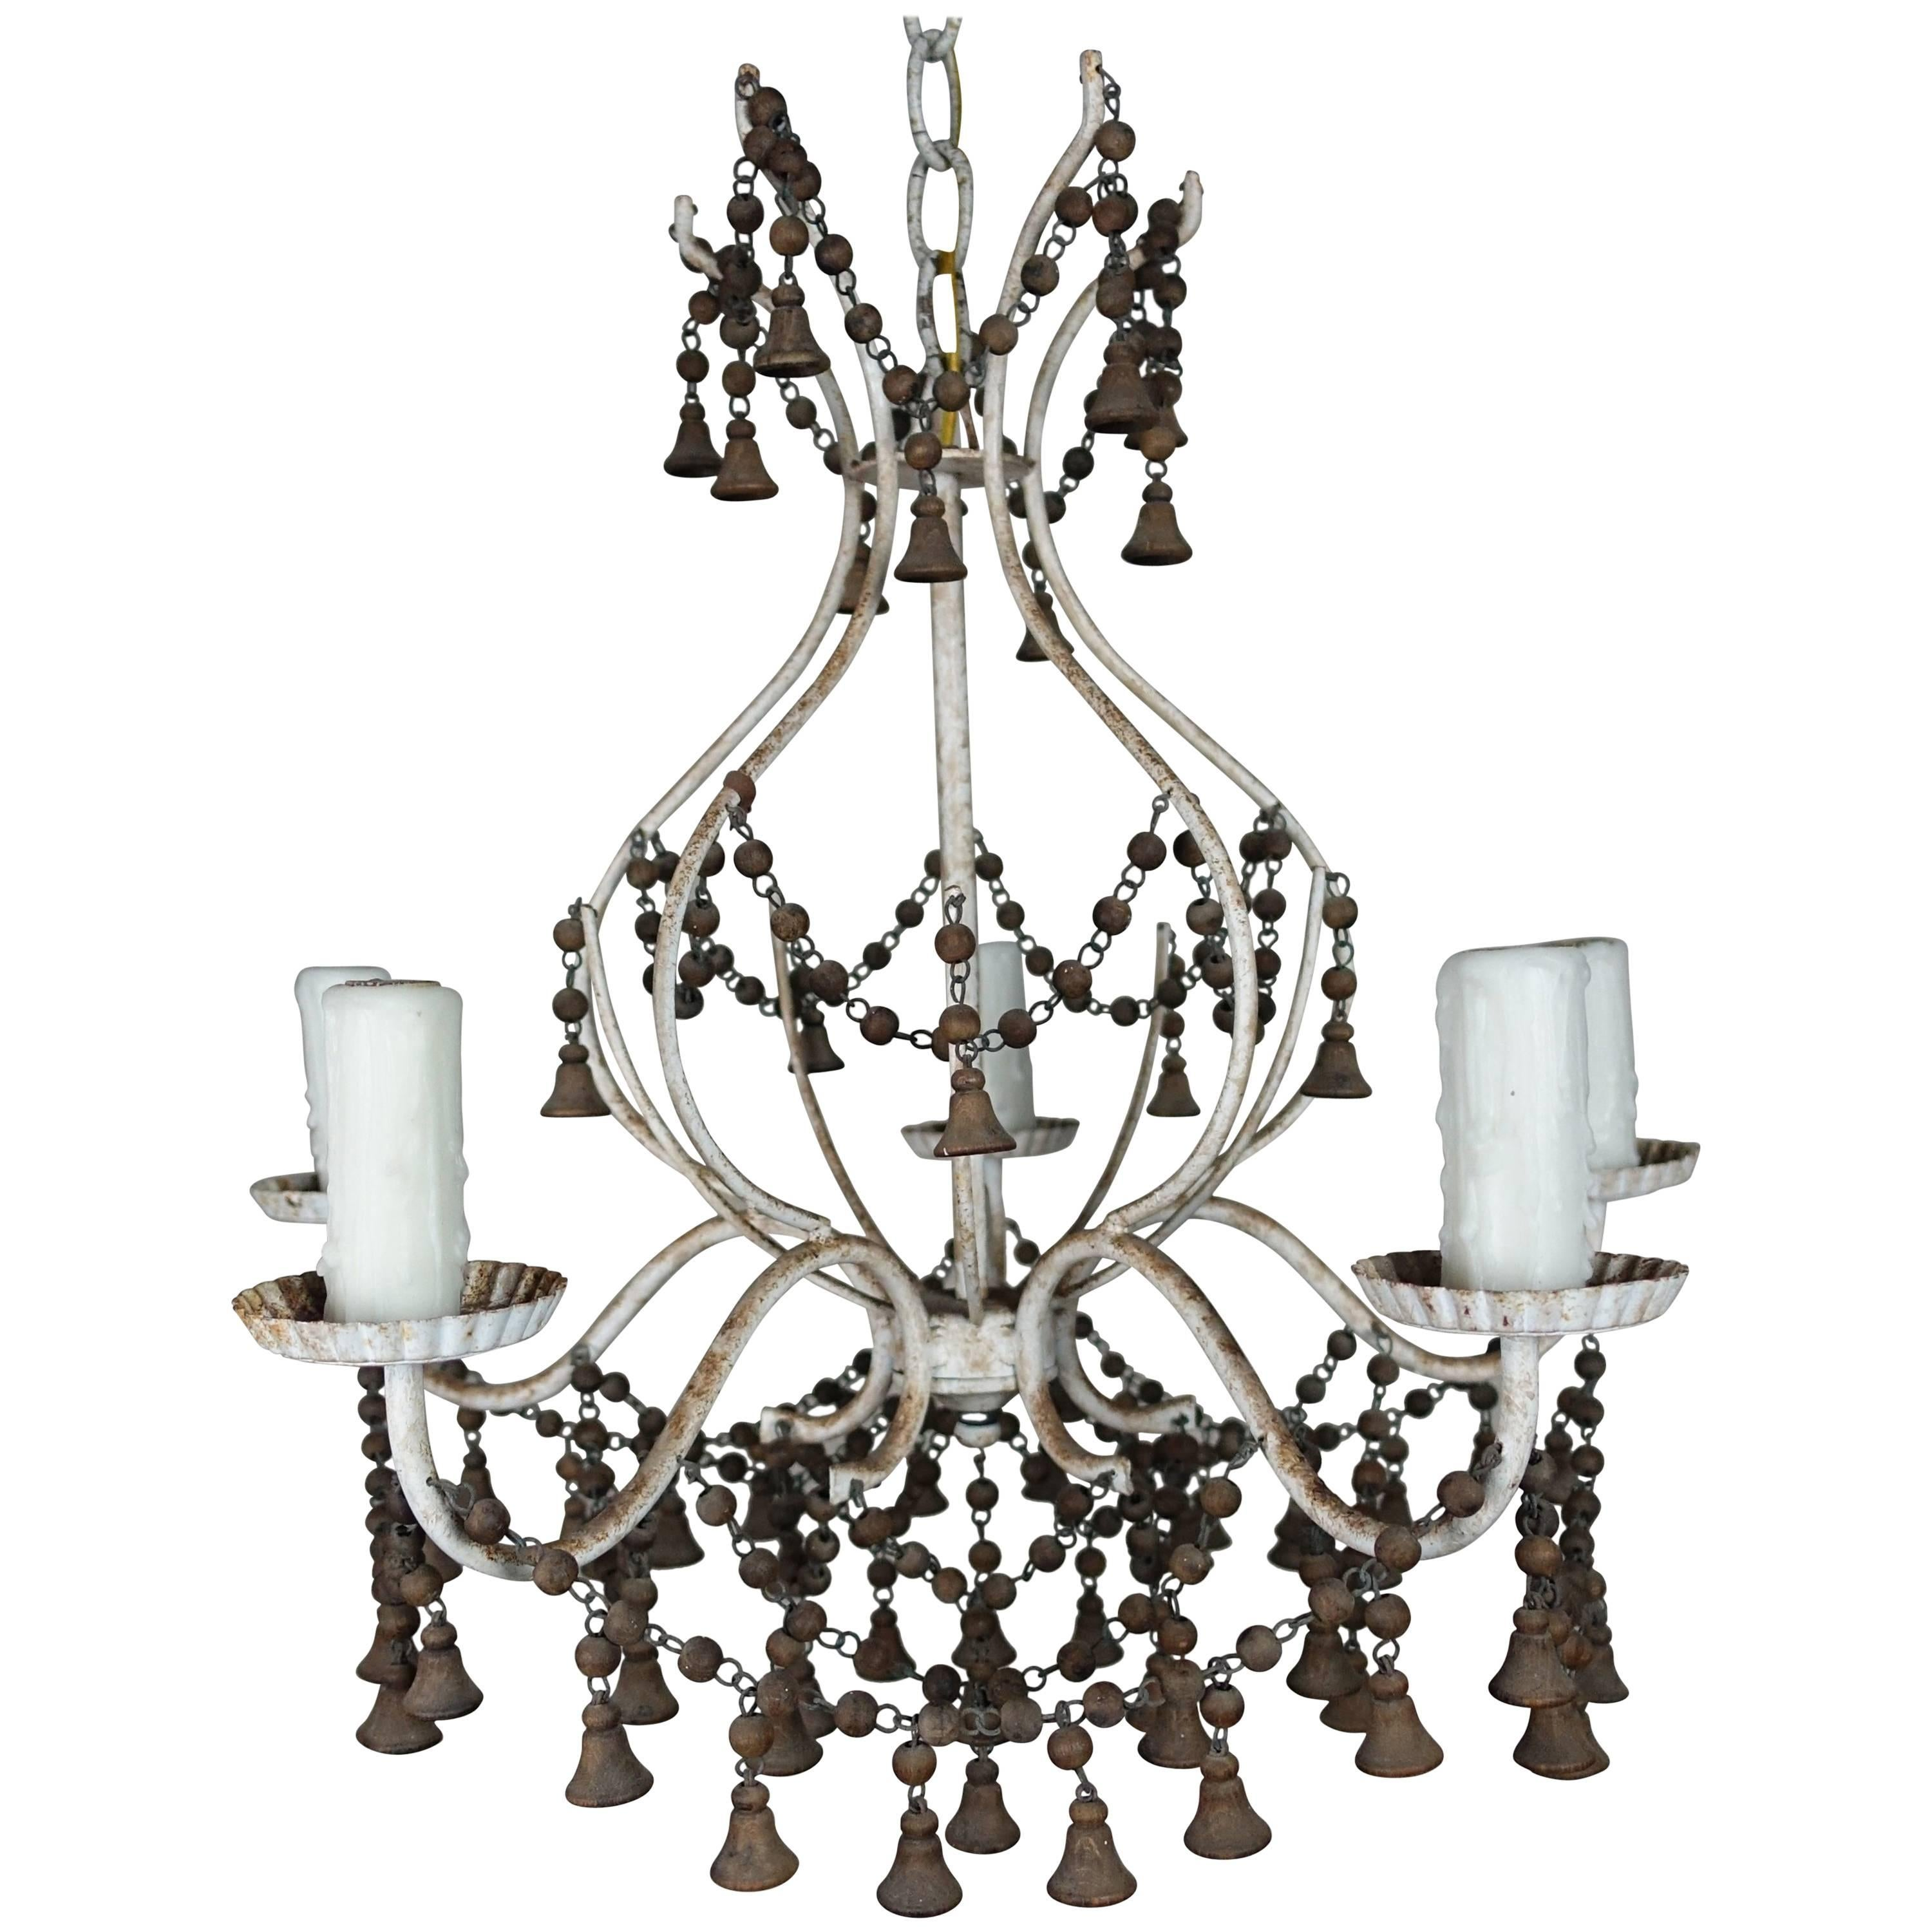 French Painted Chandelier with Wood Drops, circa 1920